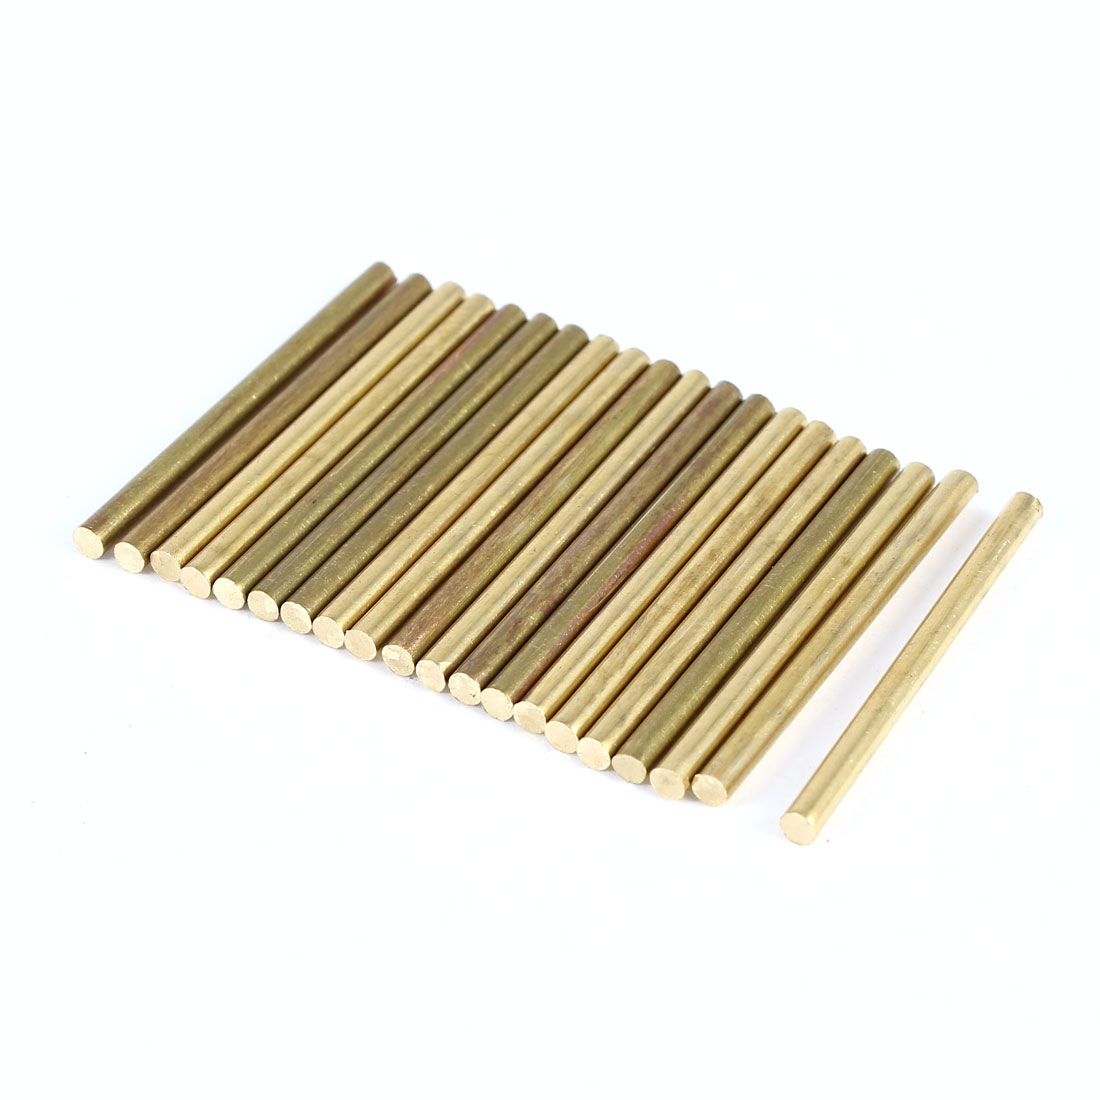 20 Pcs Car Helicopter Model Toy DIY Brass Axles Rod Bars 2mm x 30mm